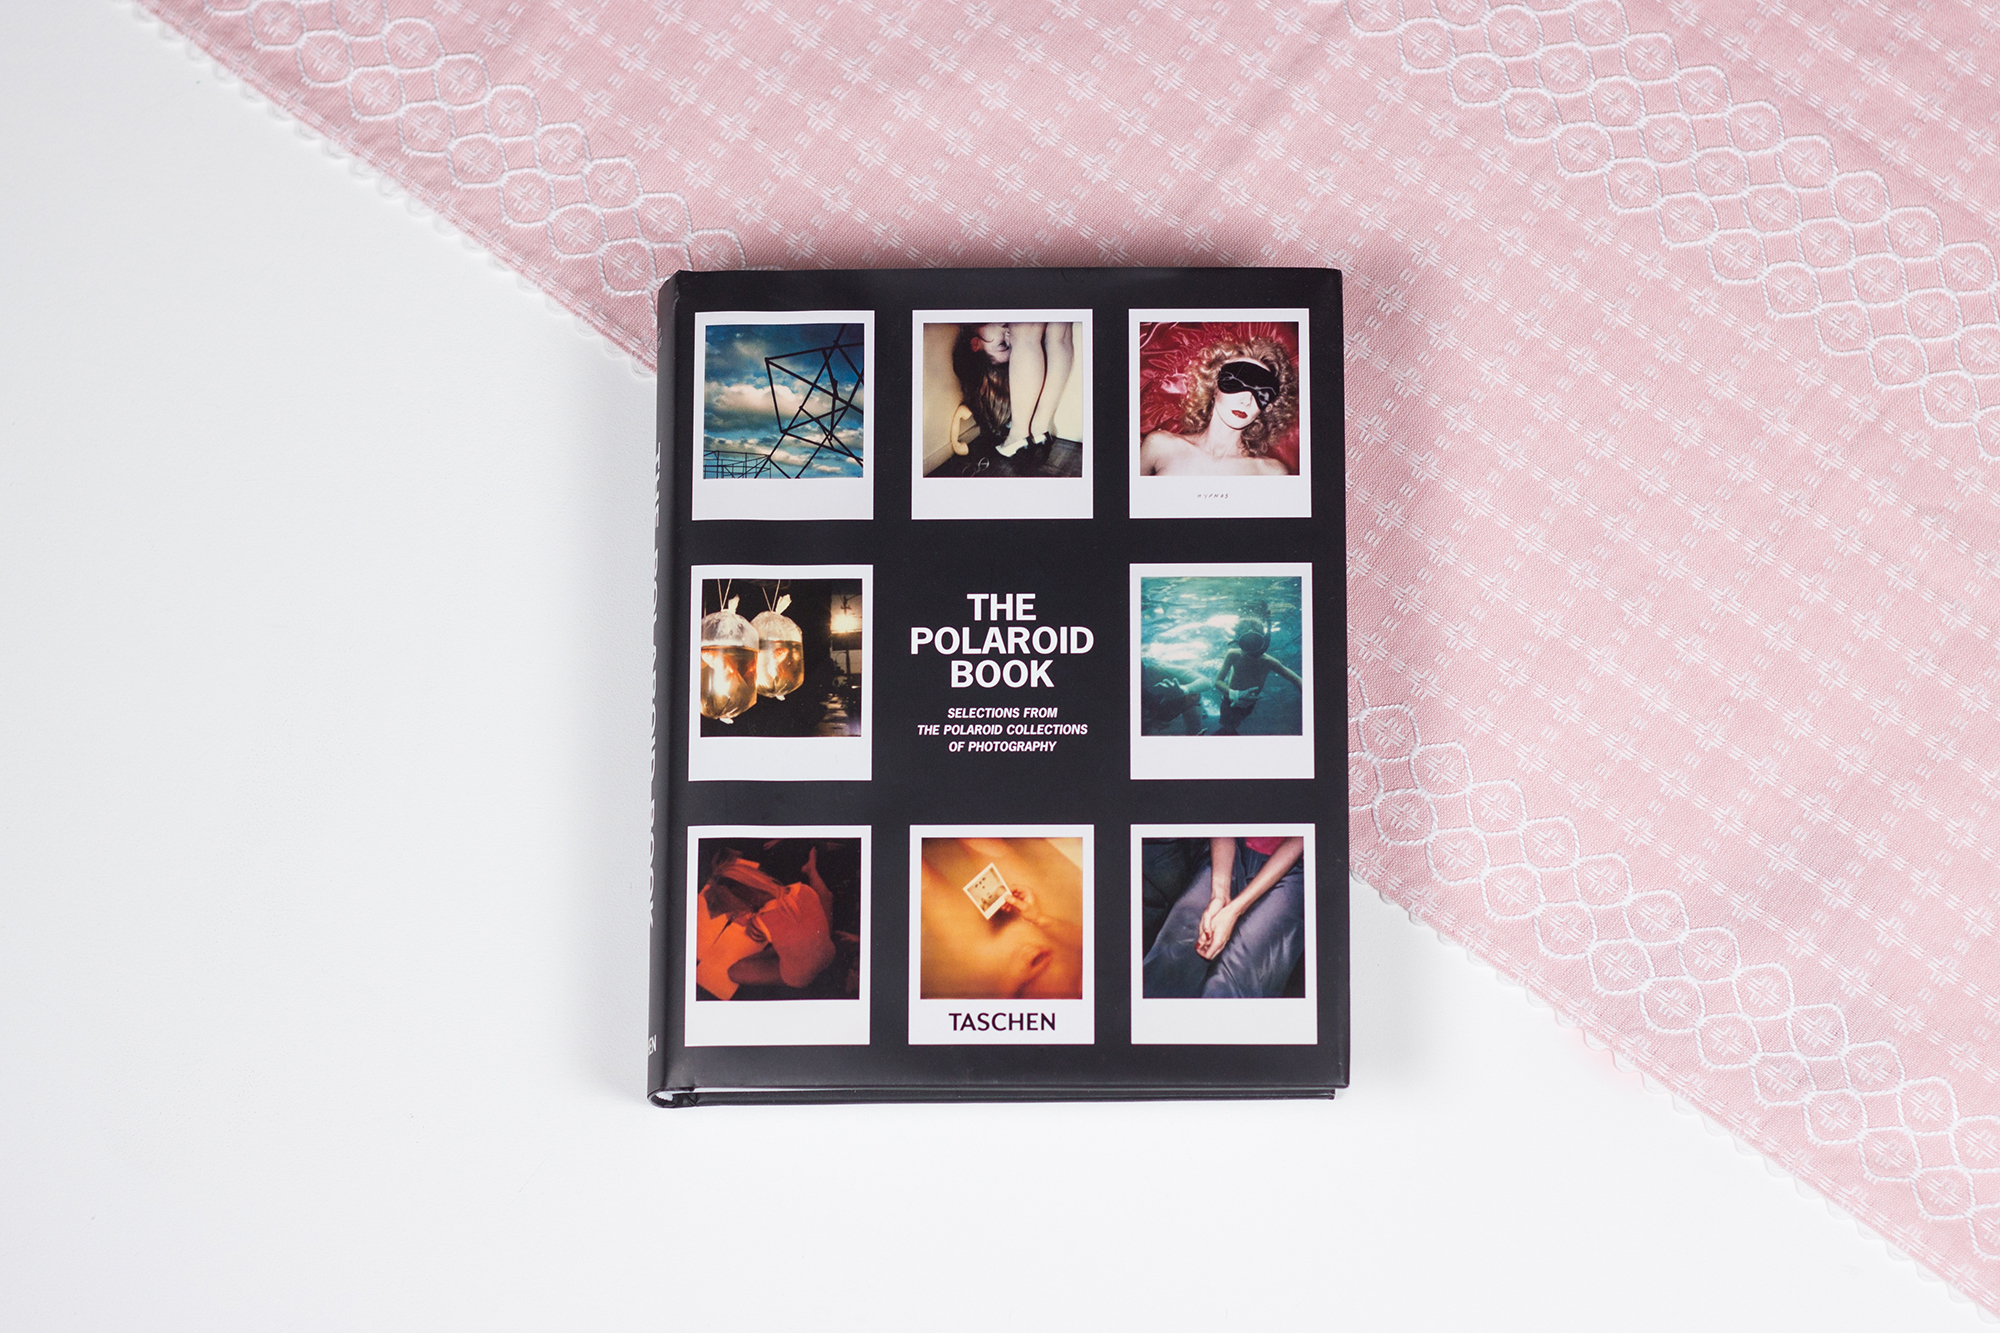 the-polaroid-book-kwerbox-2000